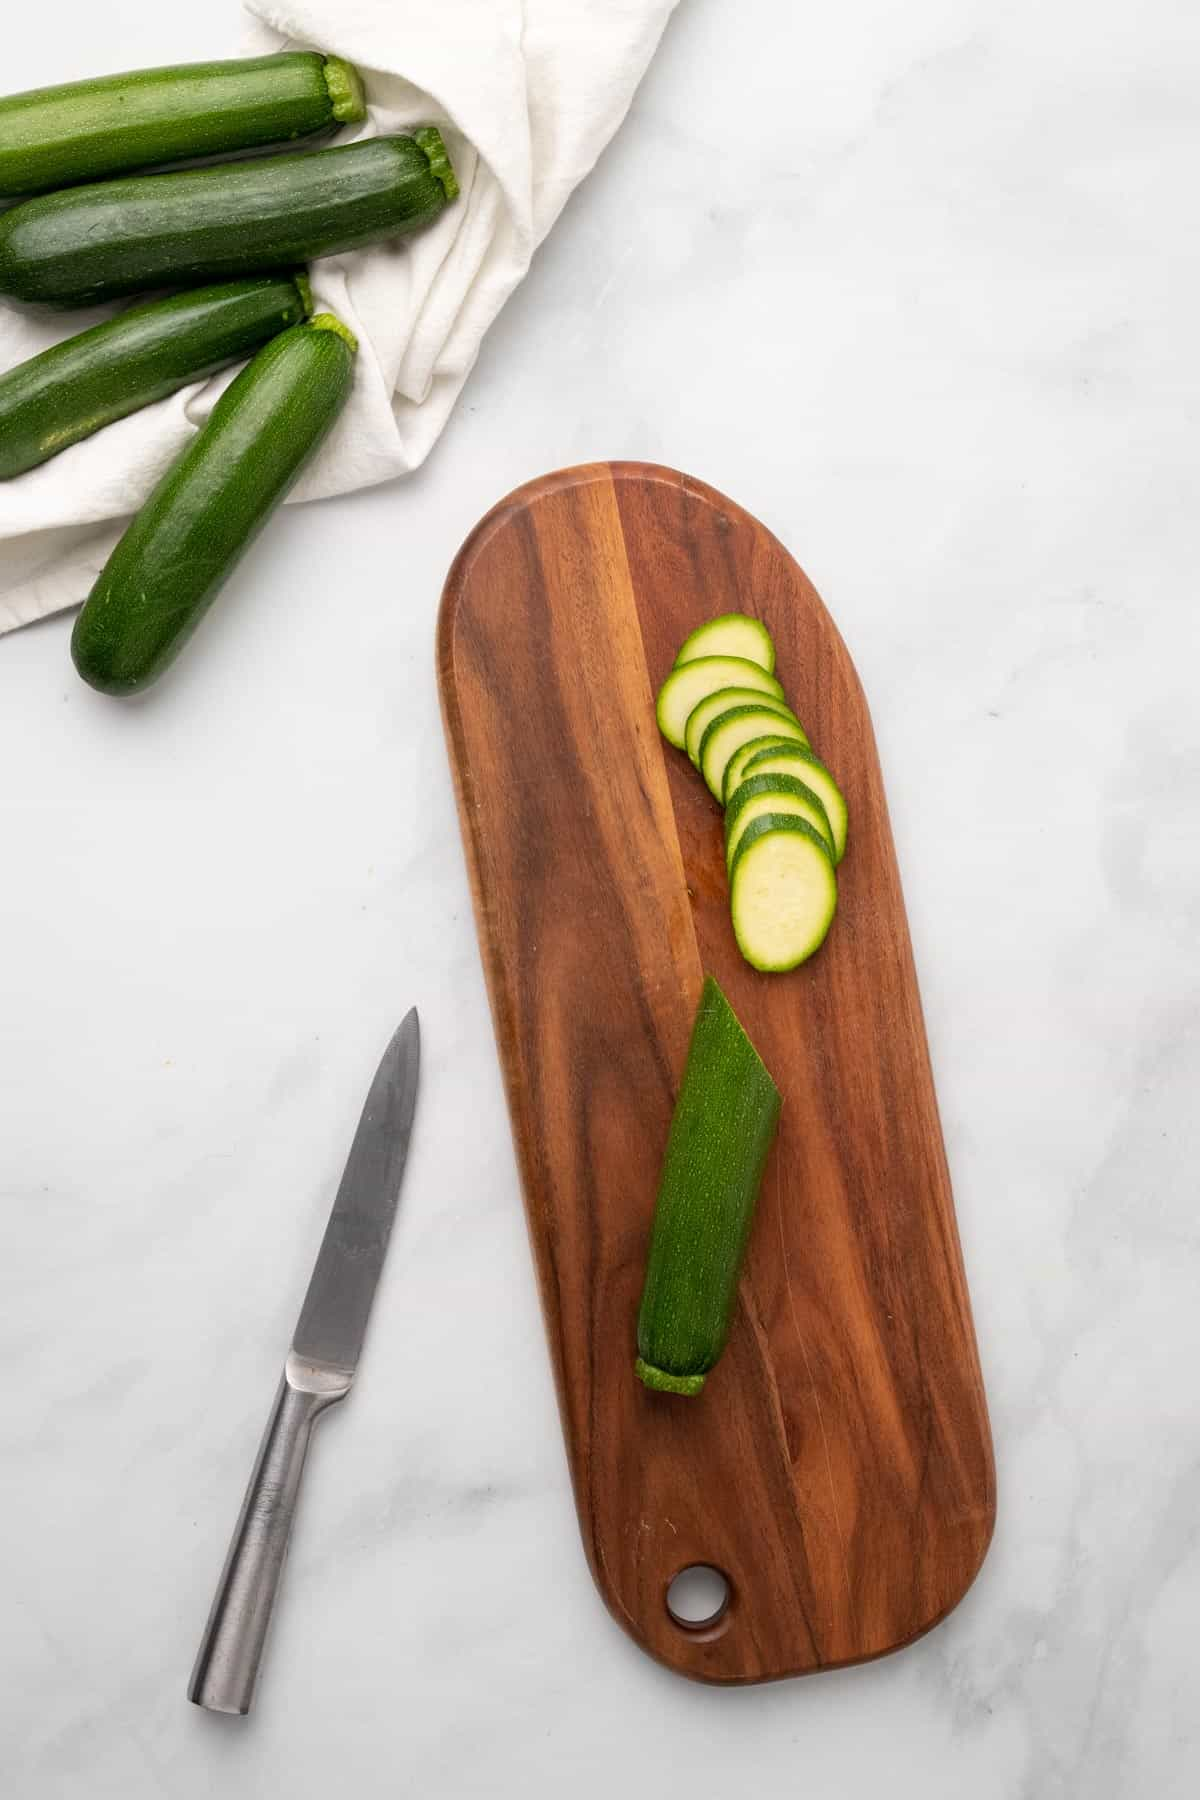 Thinly sliced zucchini on a board